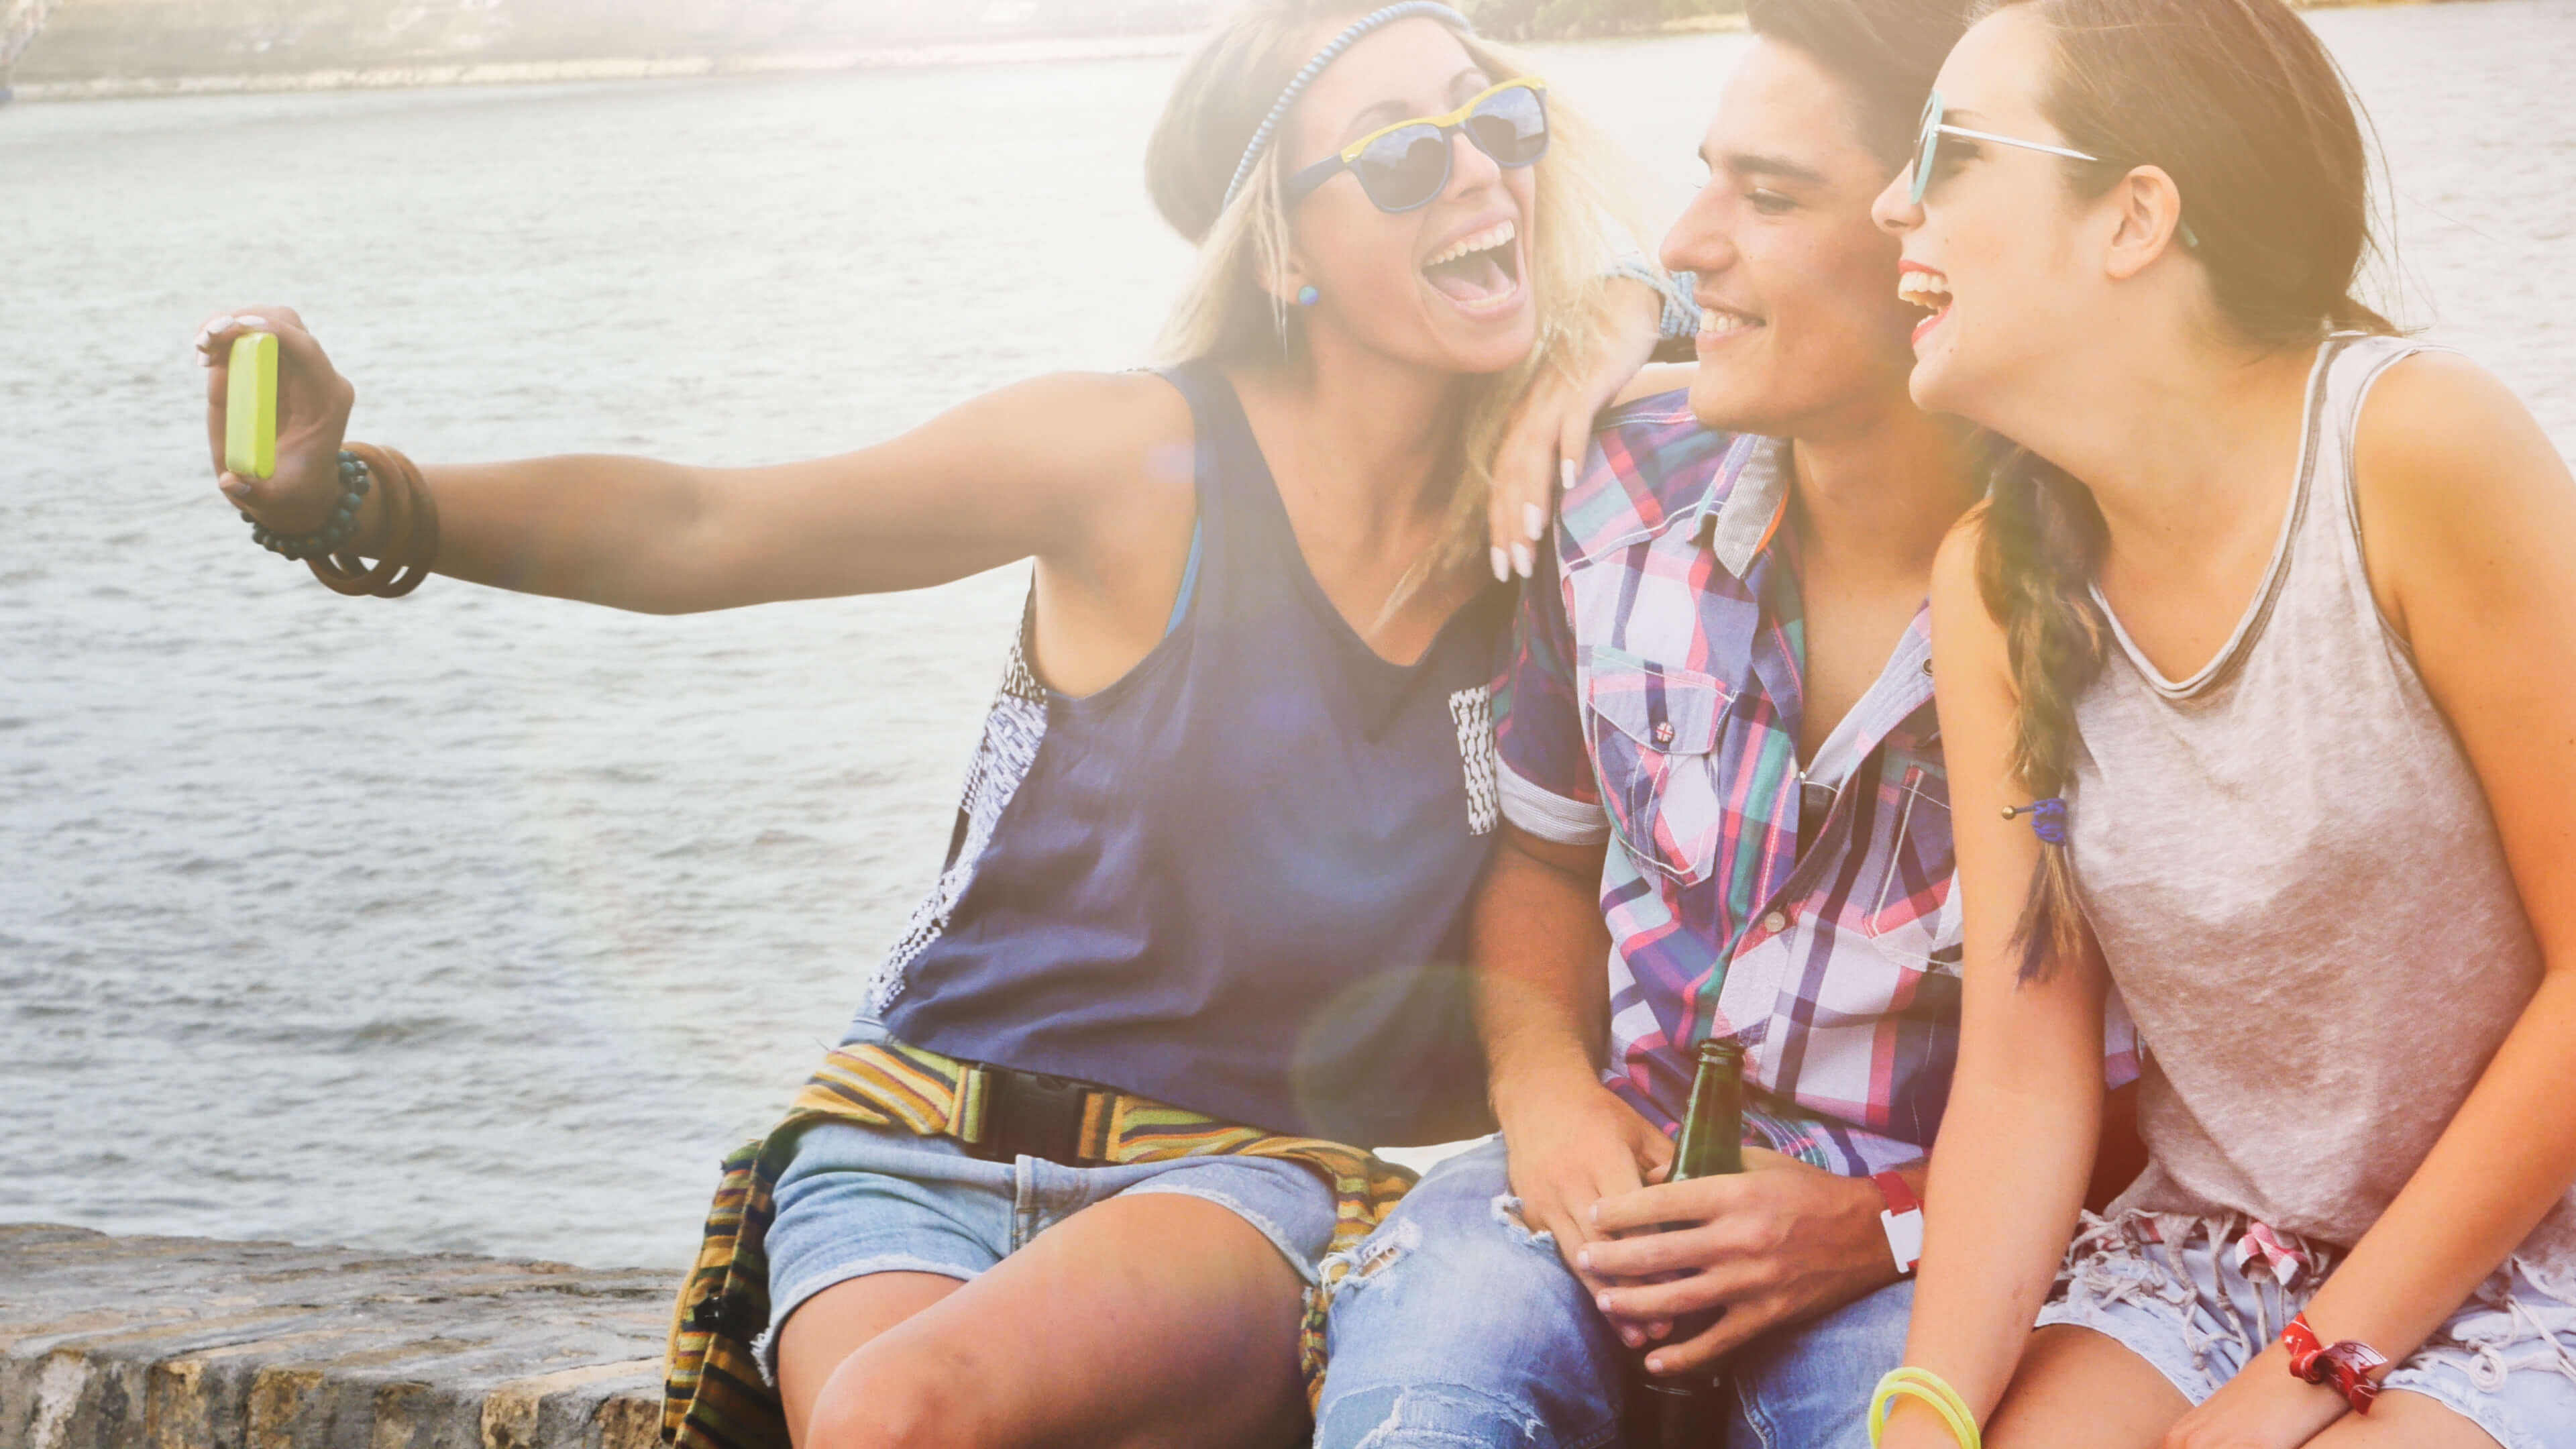 Influencer taking picture with friends, Cunningham Collective makes use of influencers in their marketing strategy.